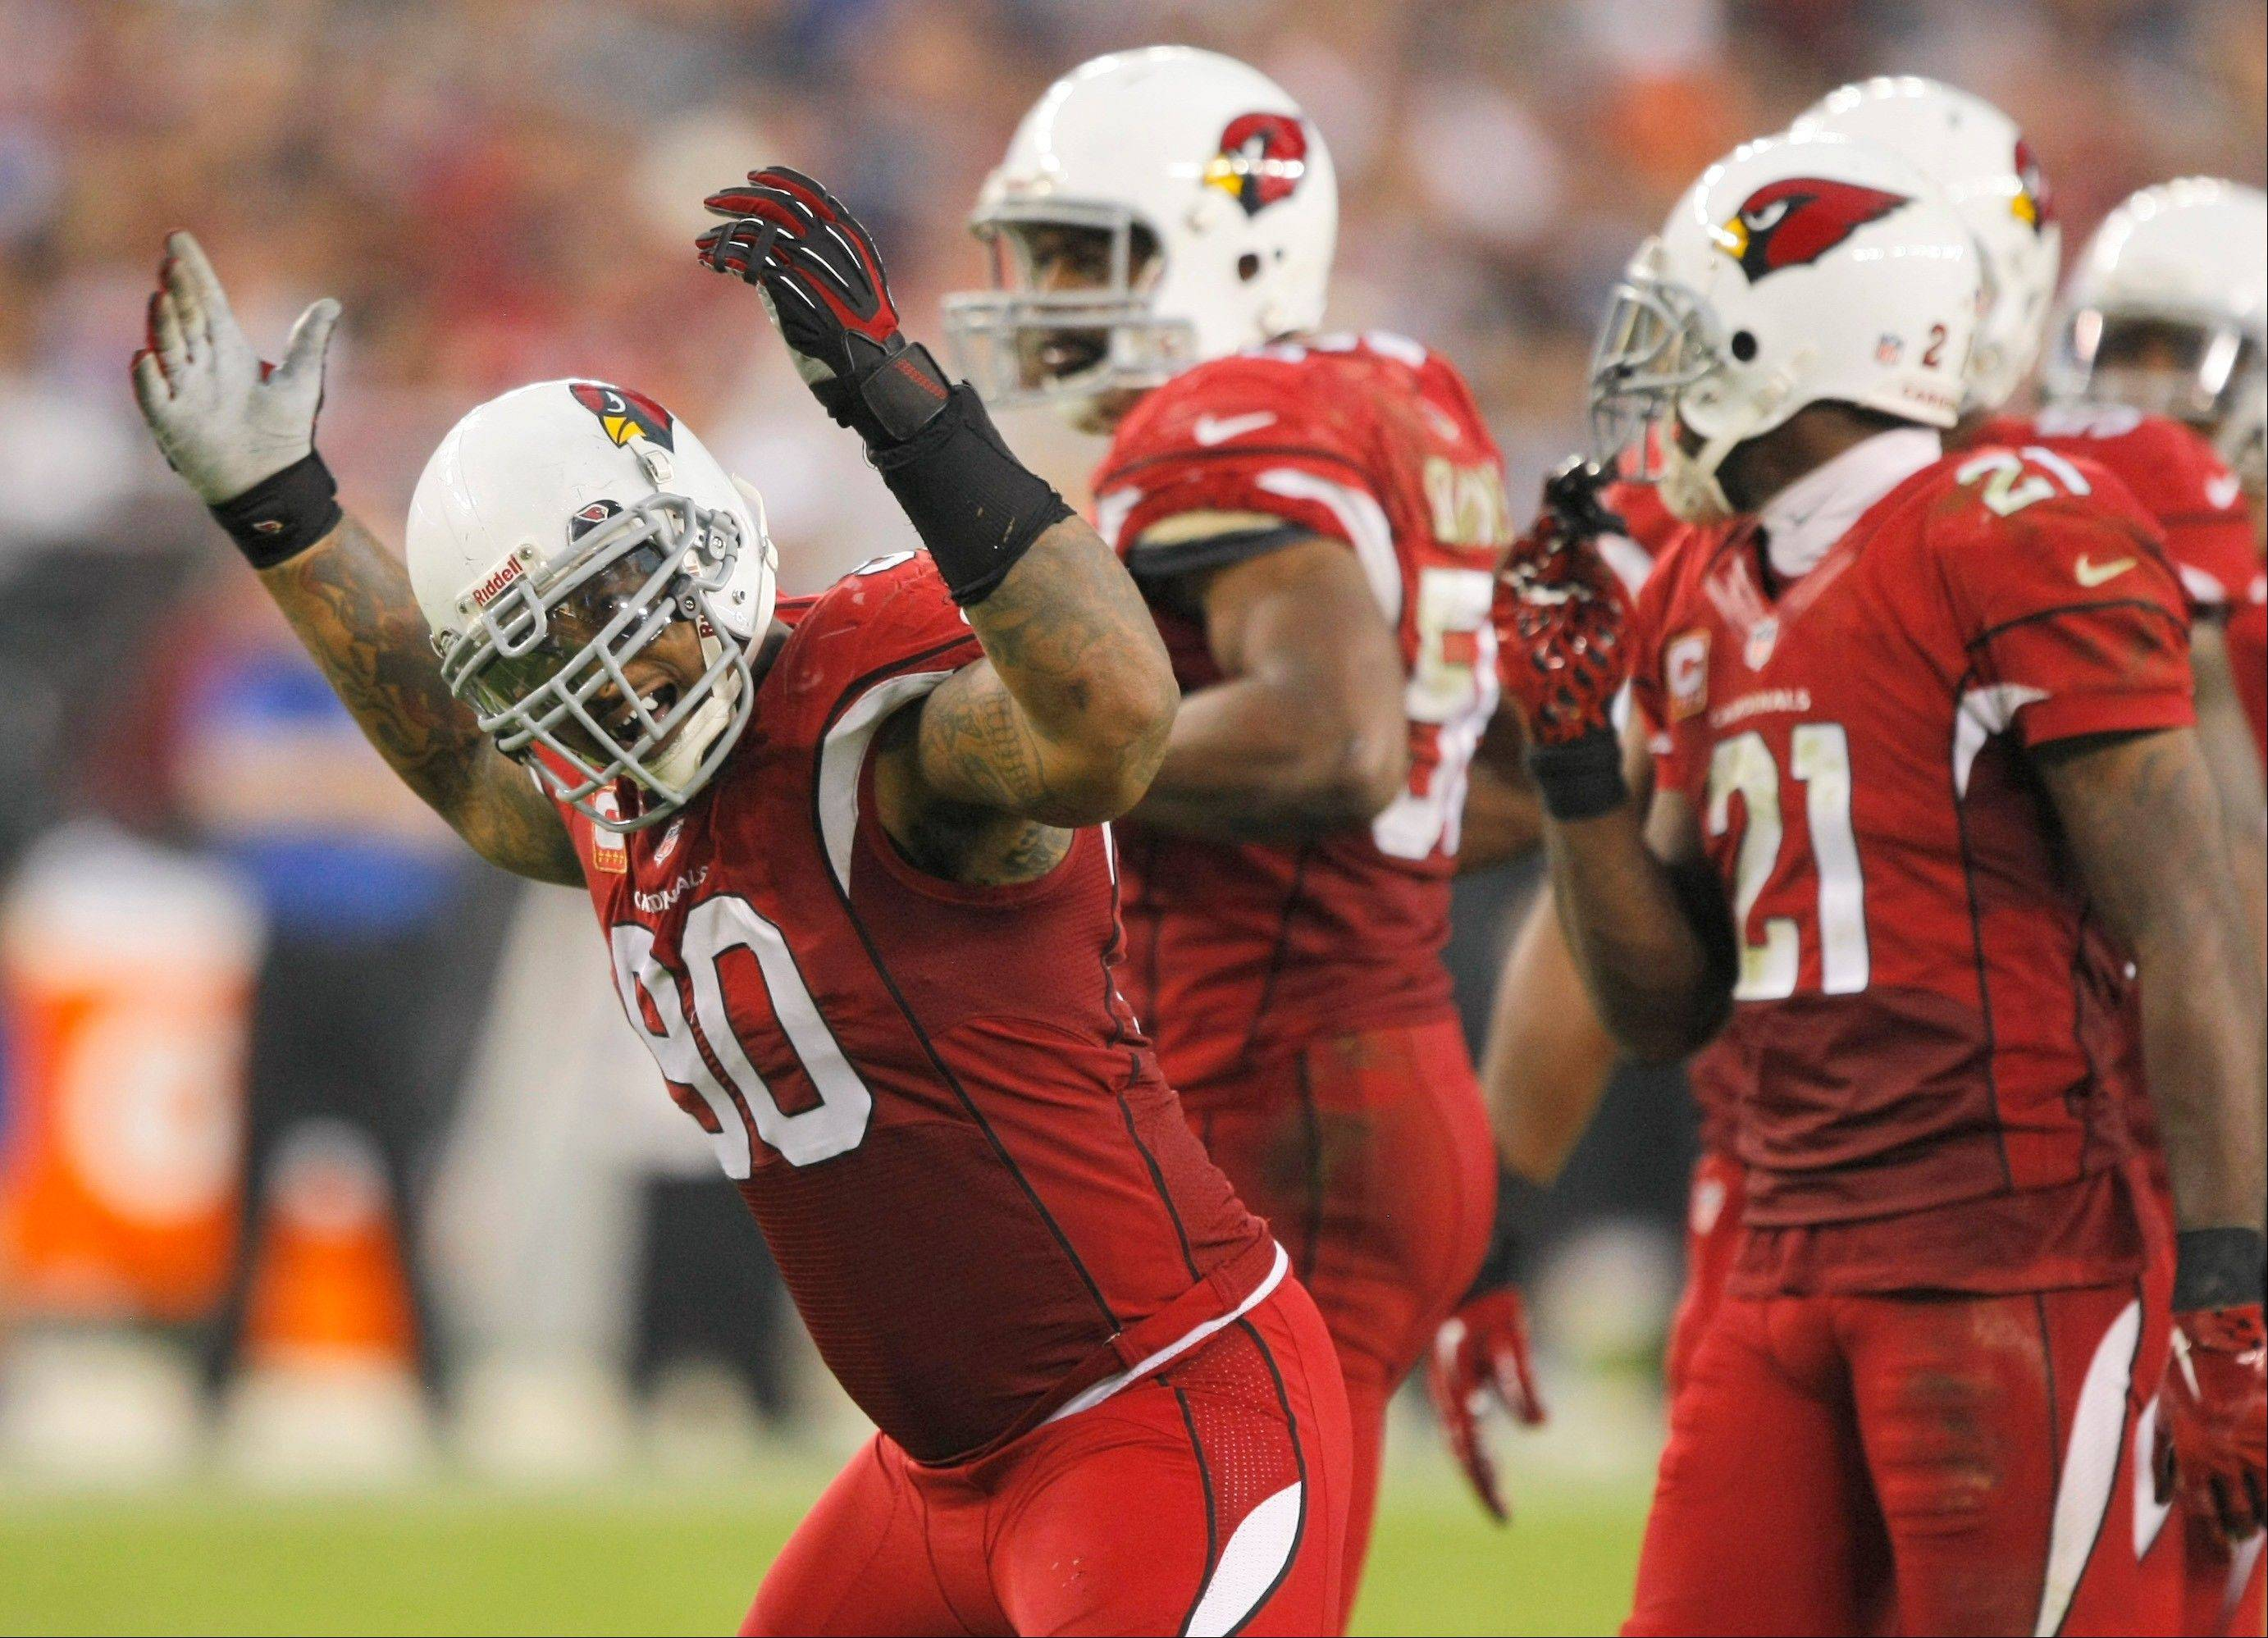 Arizona Cardinals defensive end Darnell Dockett (90) celebrates during the second half of an NFL football game against the Indianapolis Colts, Sunday, Nov. 24, 2013, in Glendale, Ariz. The Cardinals won 40-11.